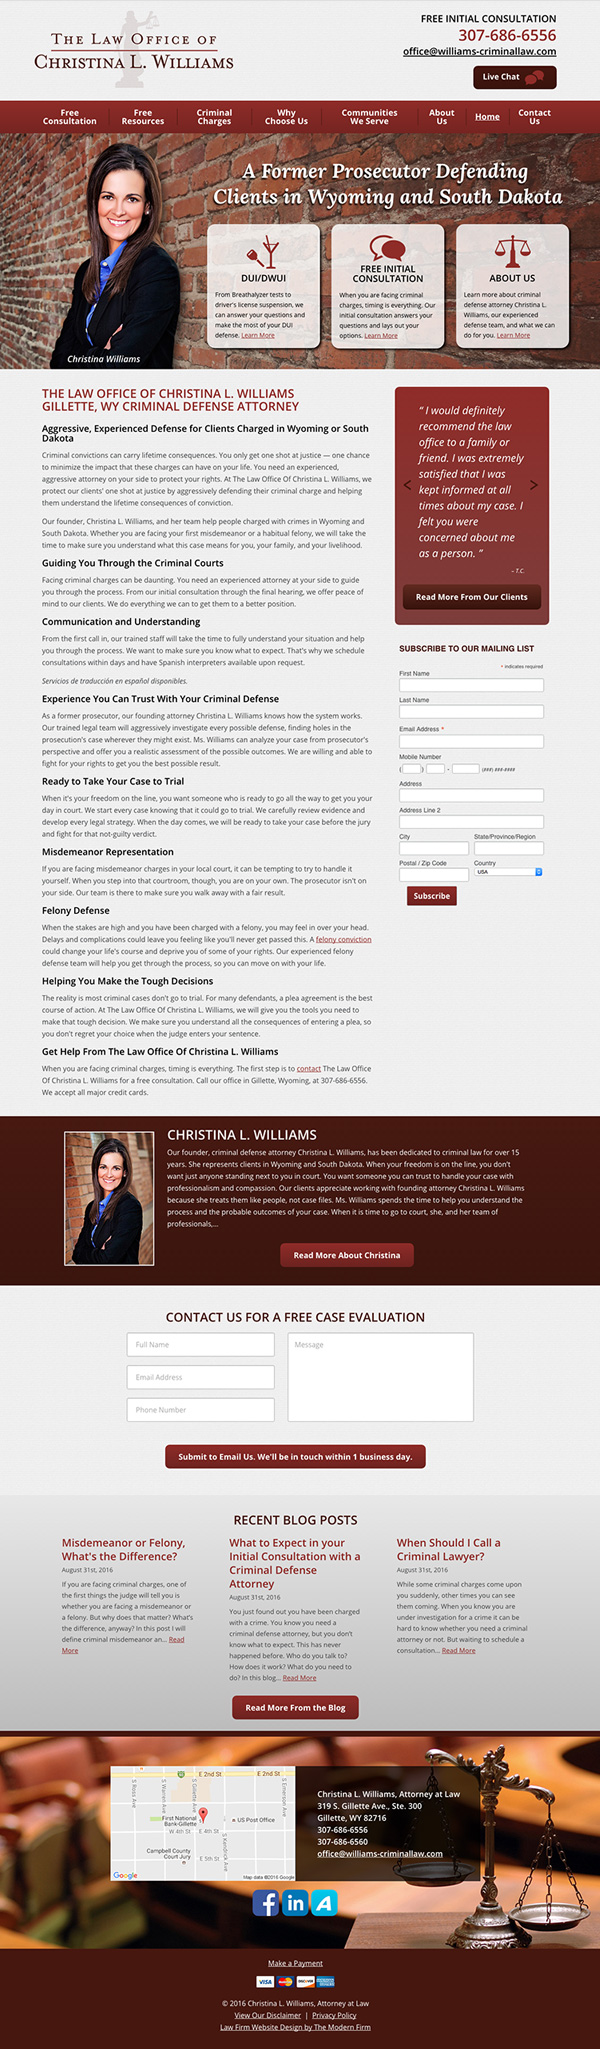 Law Firm Website Design for Christina L. Williams, Attorney at Law